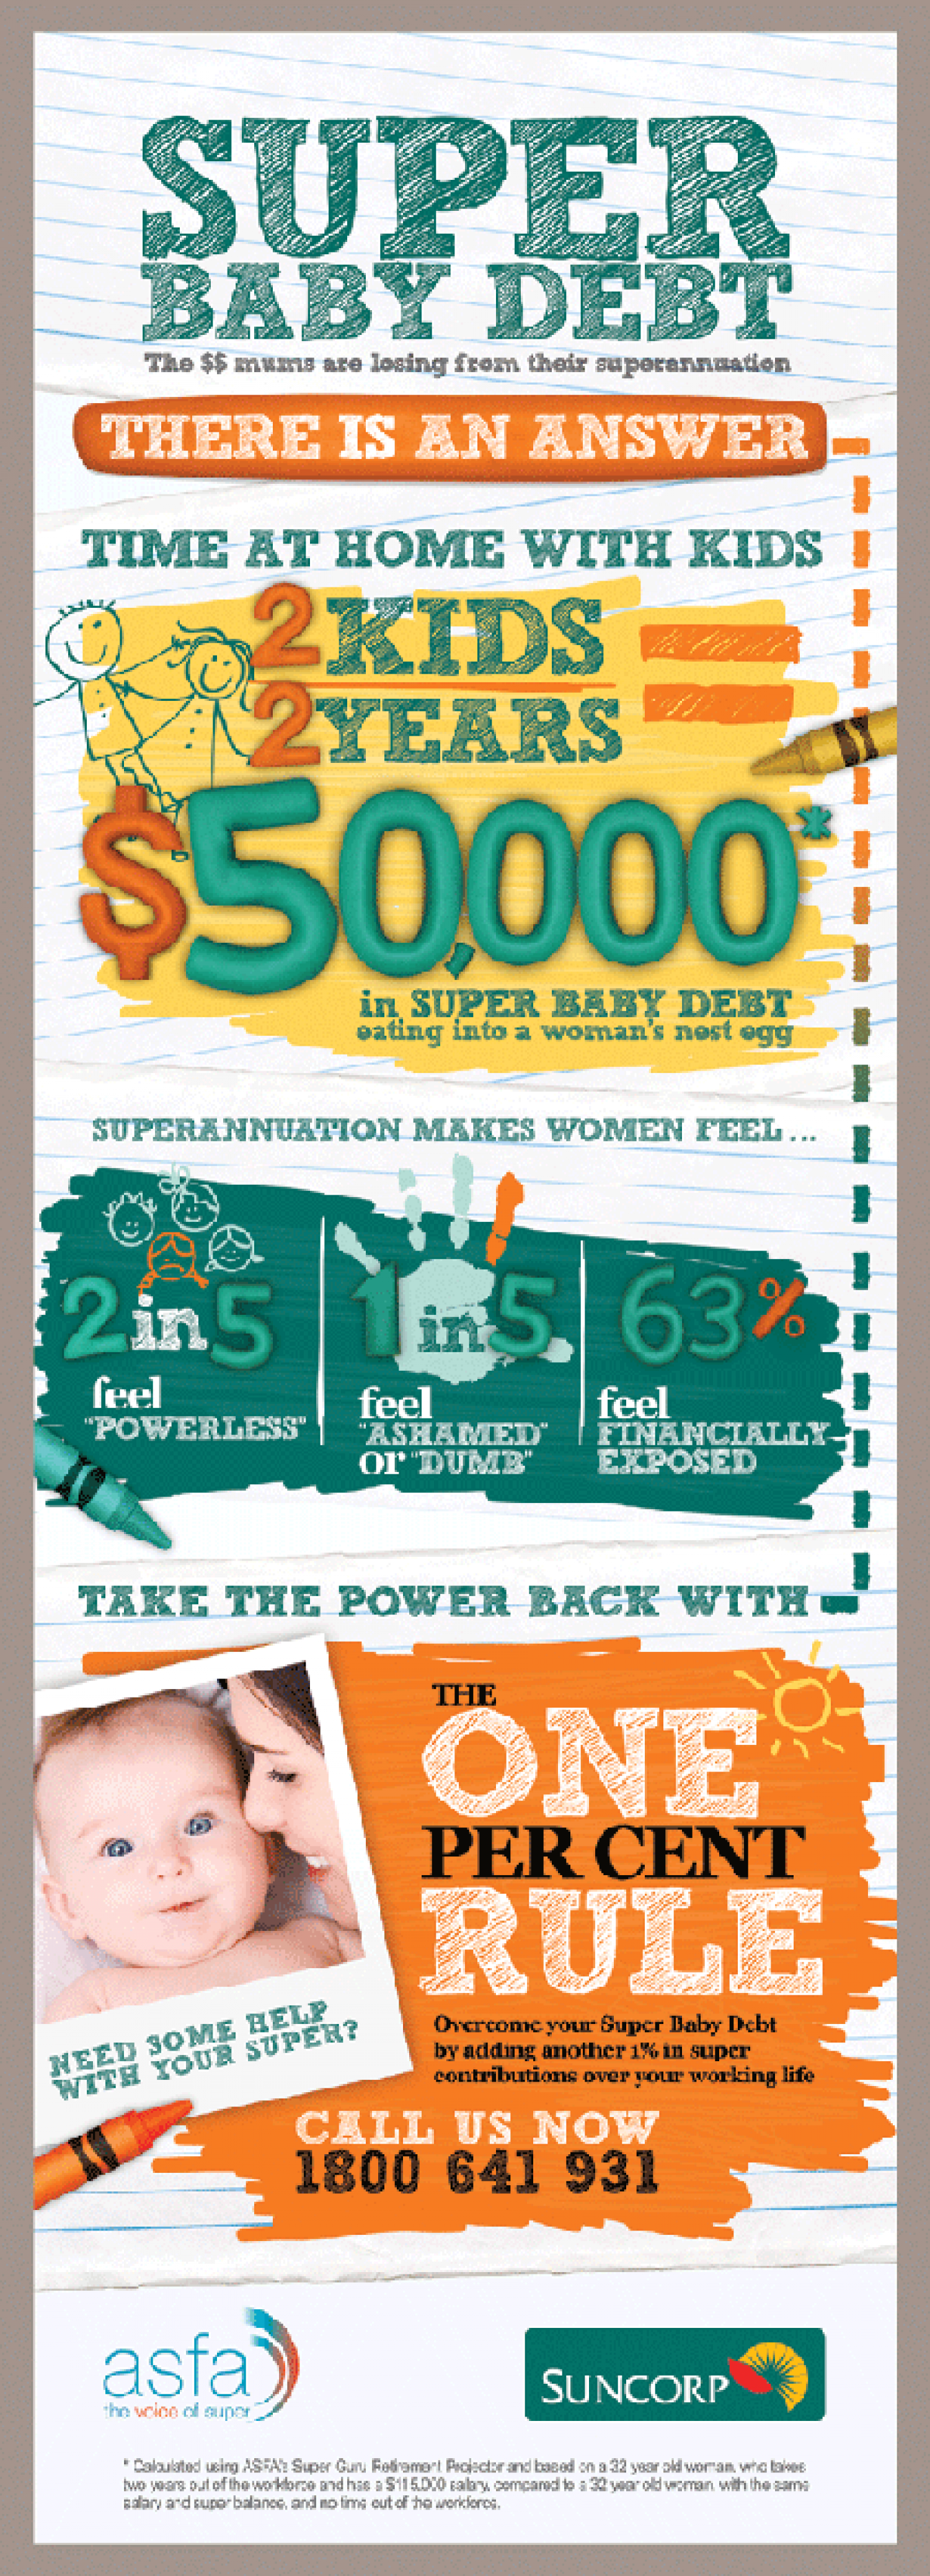 Super Baby Debt Infographic